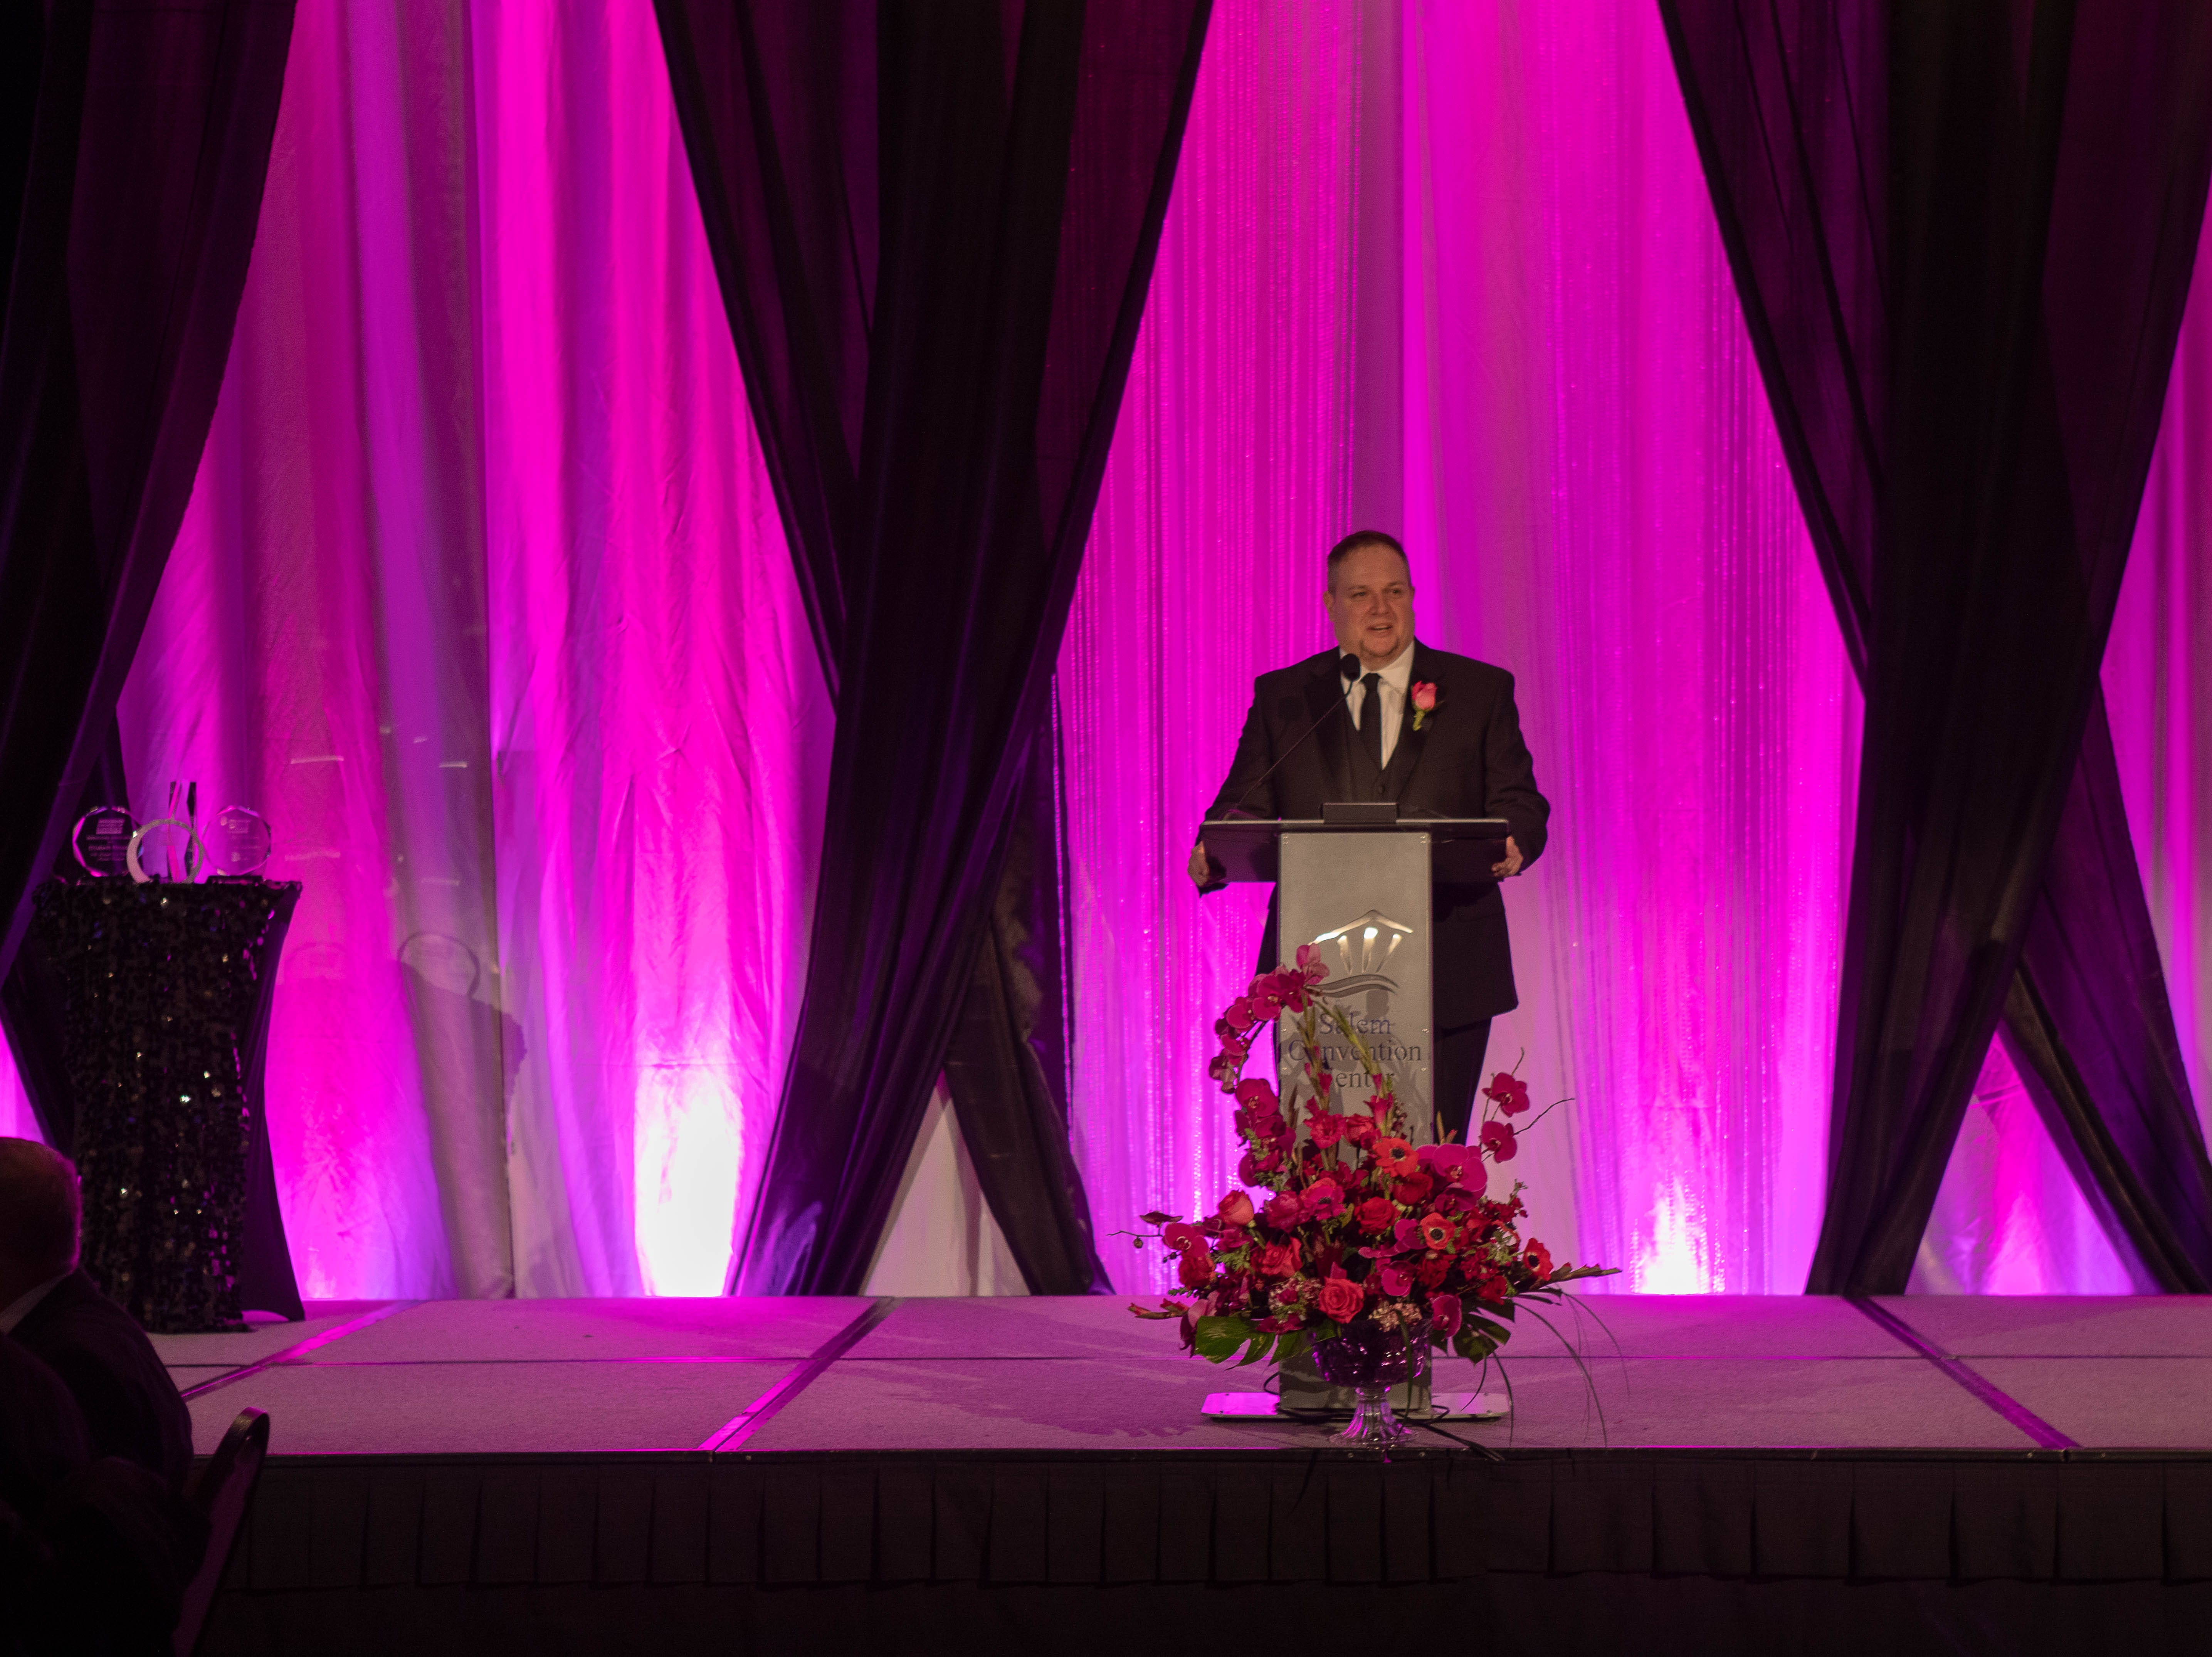 Tom Hoffert, CEO of Salem Area Chamber of Commerce, opening speech at the First Citizen Awards Banquet March 8, 2019, at the Salem Convention Center.